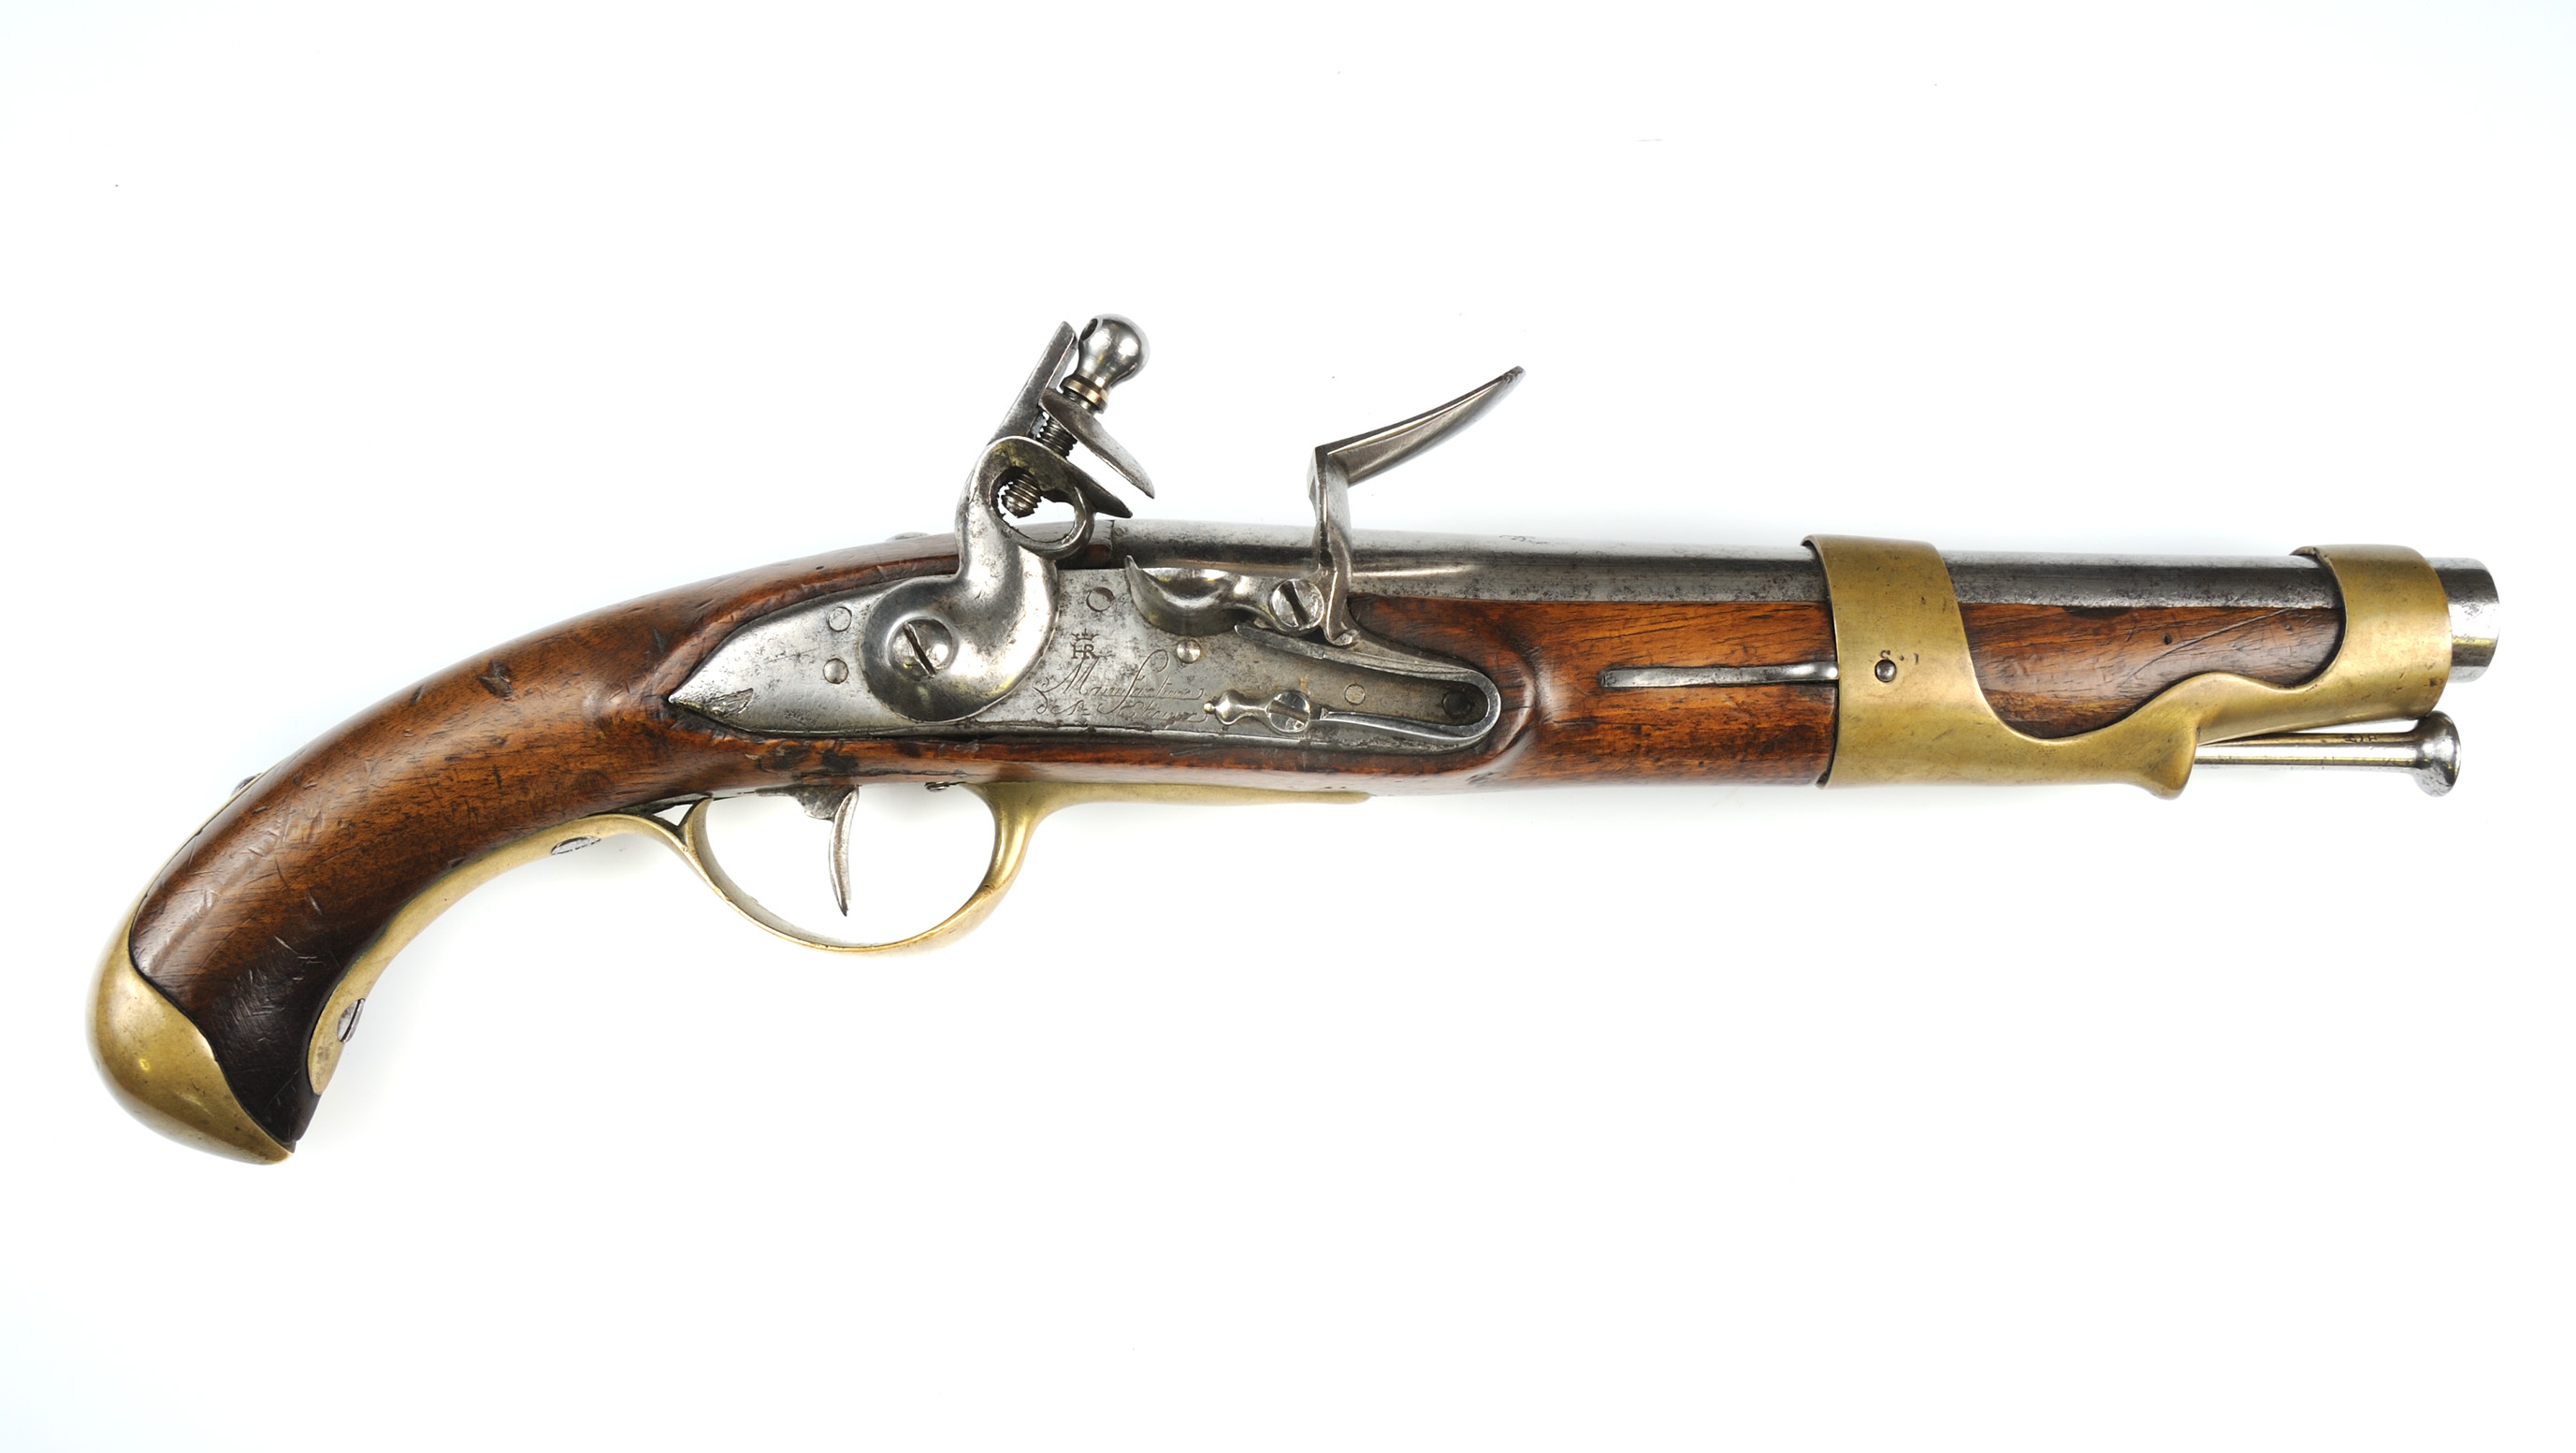 French Model 1766 cavalry pistol made at St. Etienne, 1775